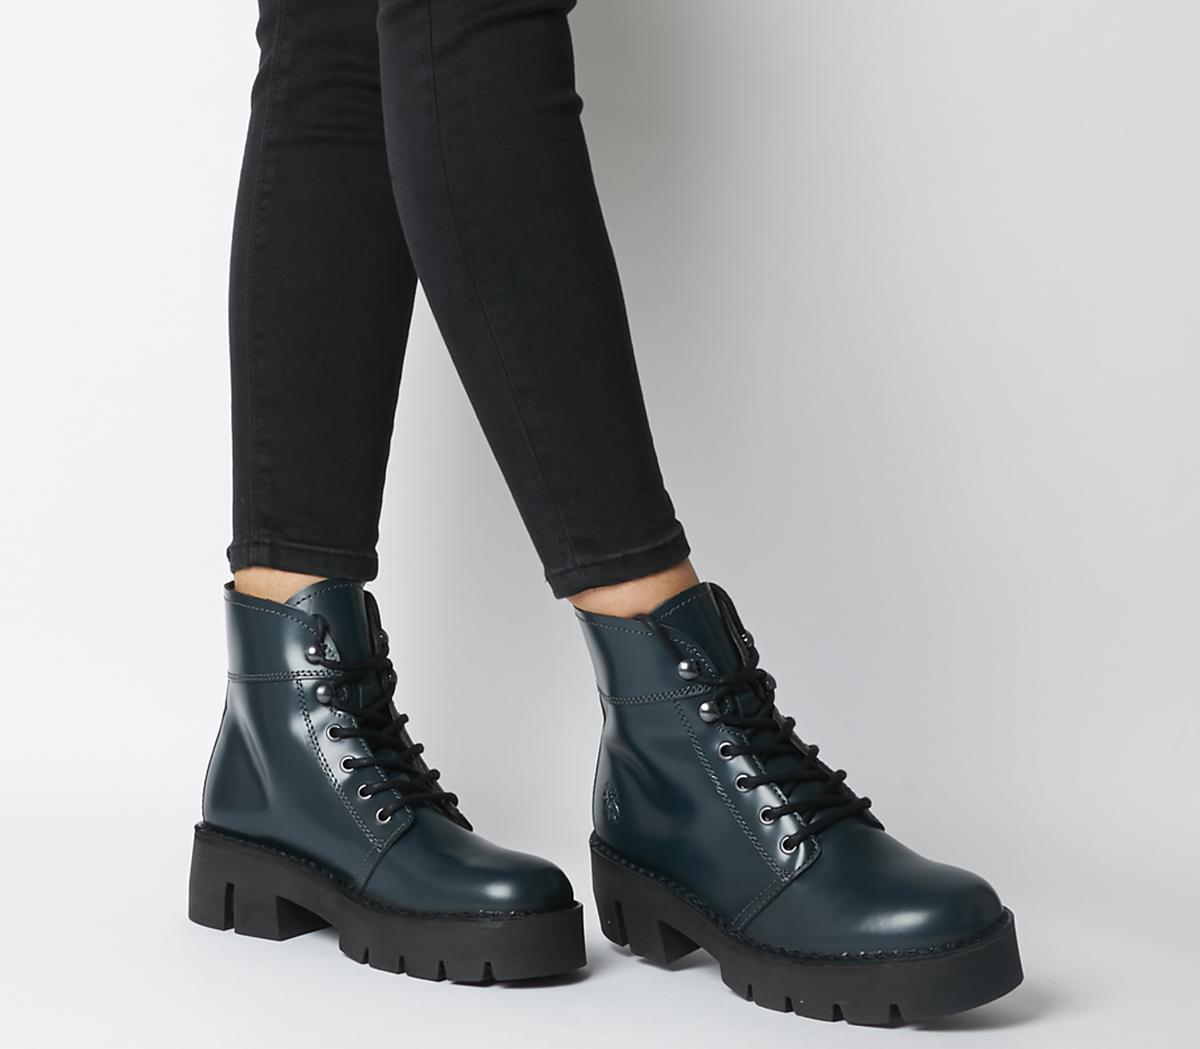 Bola Boots